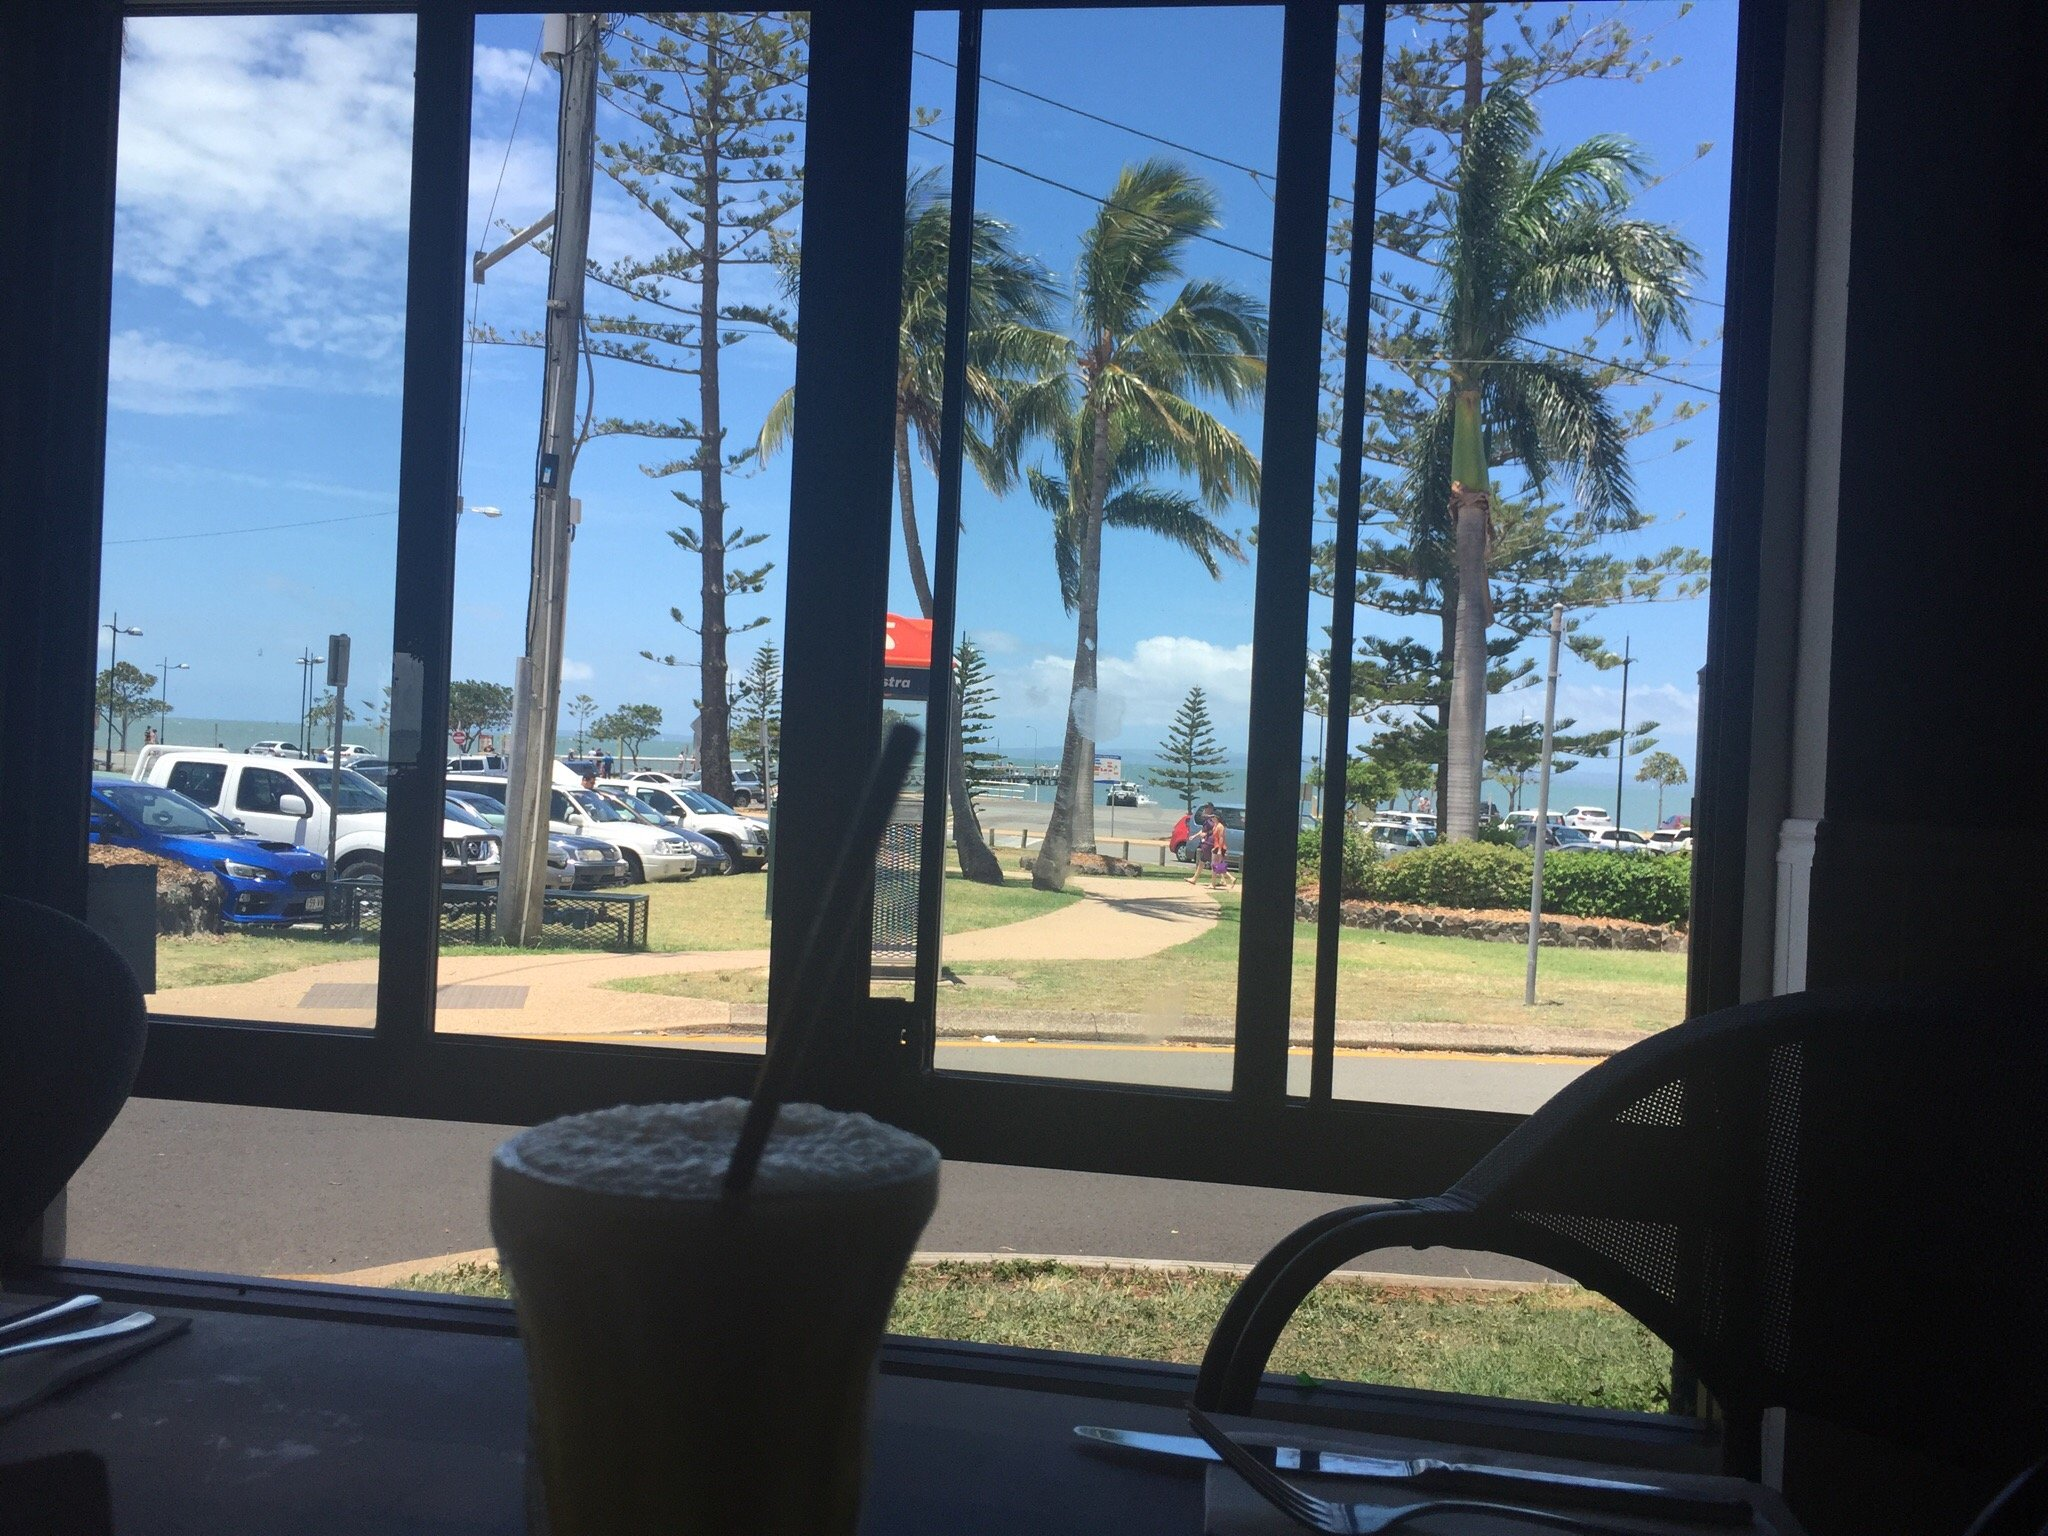 Point Of View Cafe & Restaurant | 1 MAIN Road, Wellington Point, Queensland 4160 | +61 7 3207 2341